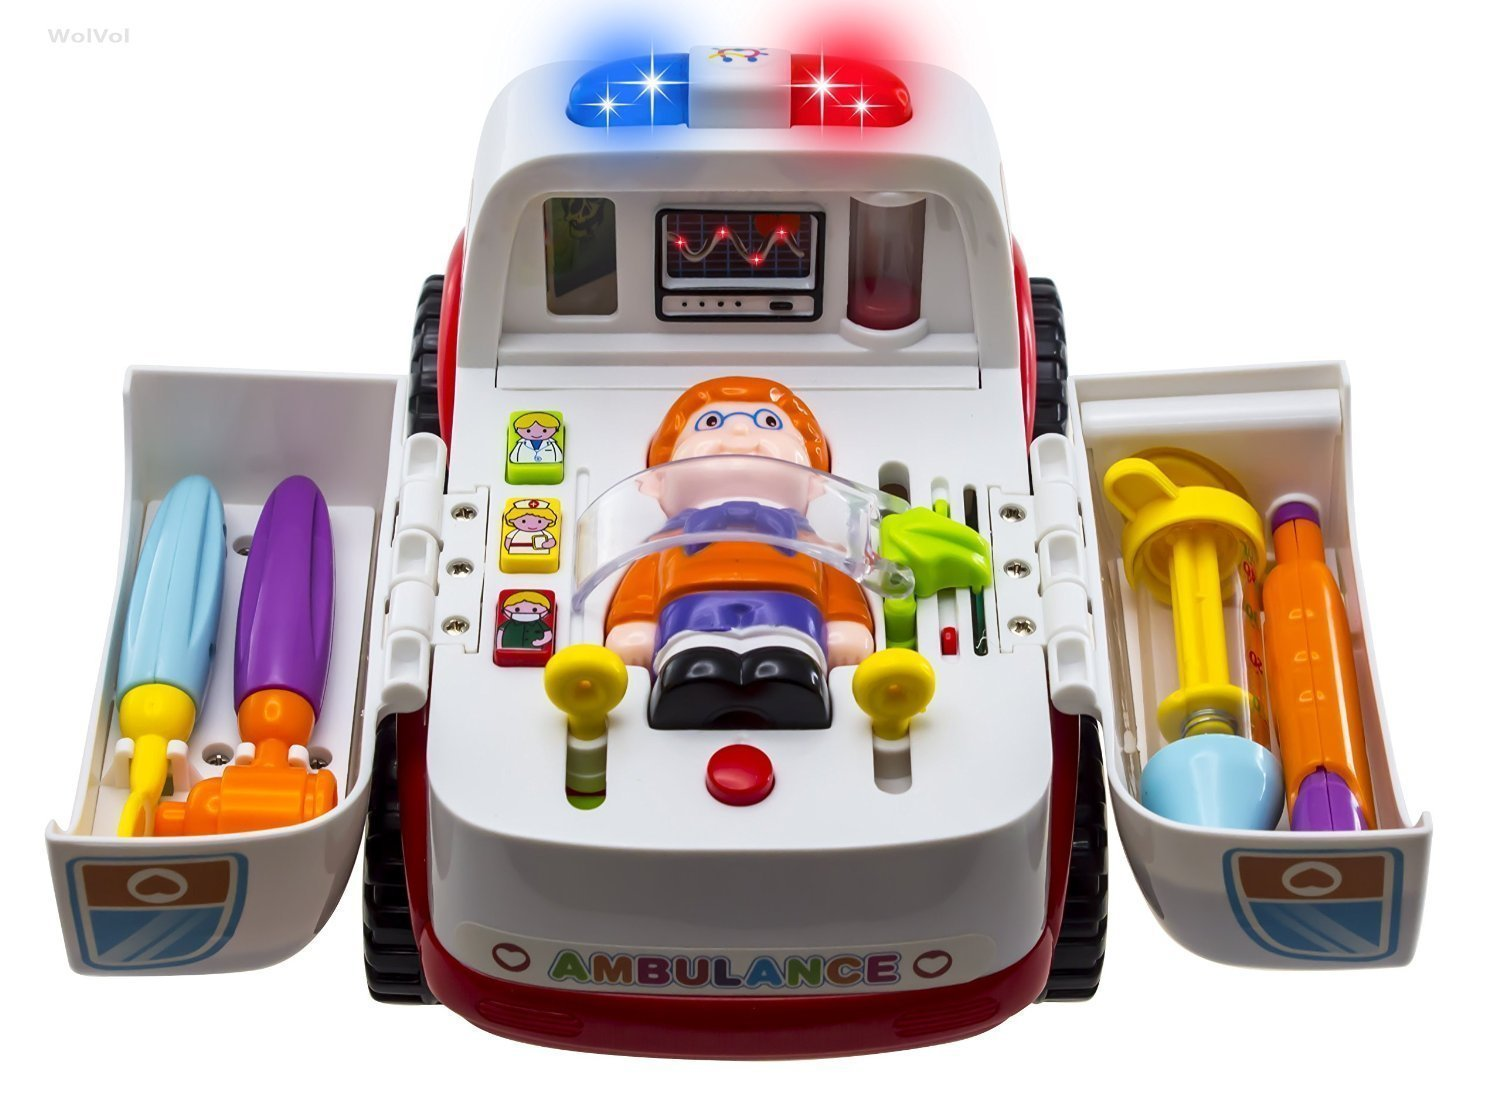 Ambulance Rescue Vehicle Doctors Set - WISHTIME Pretend Play Toy Rescue Vehicle Bump and Go with Various Medical Equipment, Lights Music and Medical Sounds For Children Kids Hanji